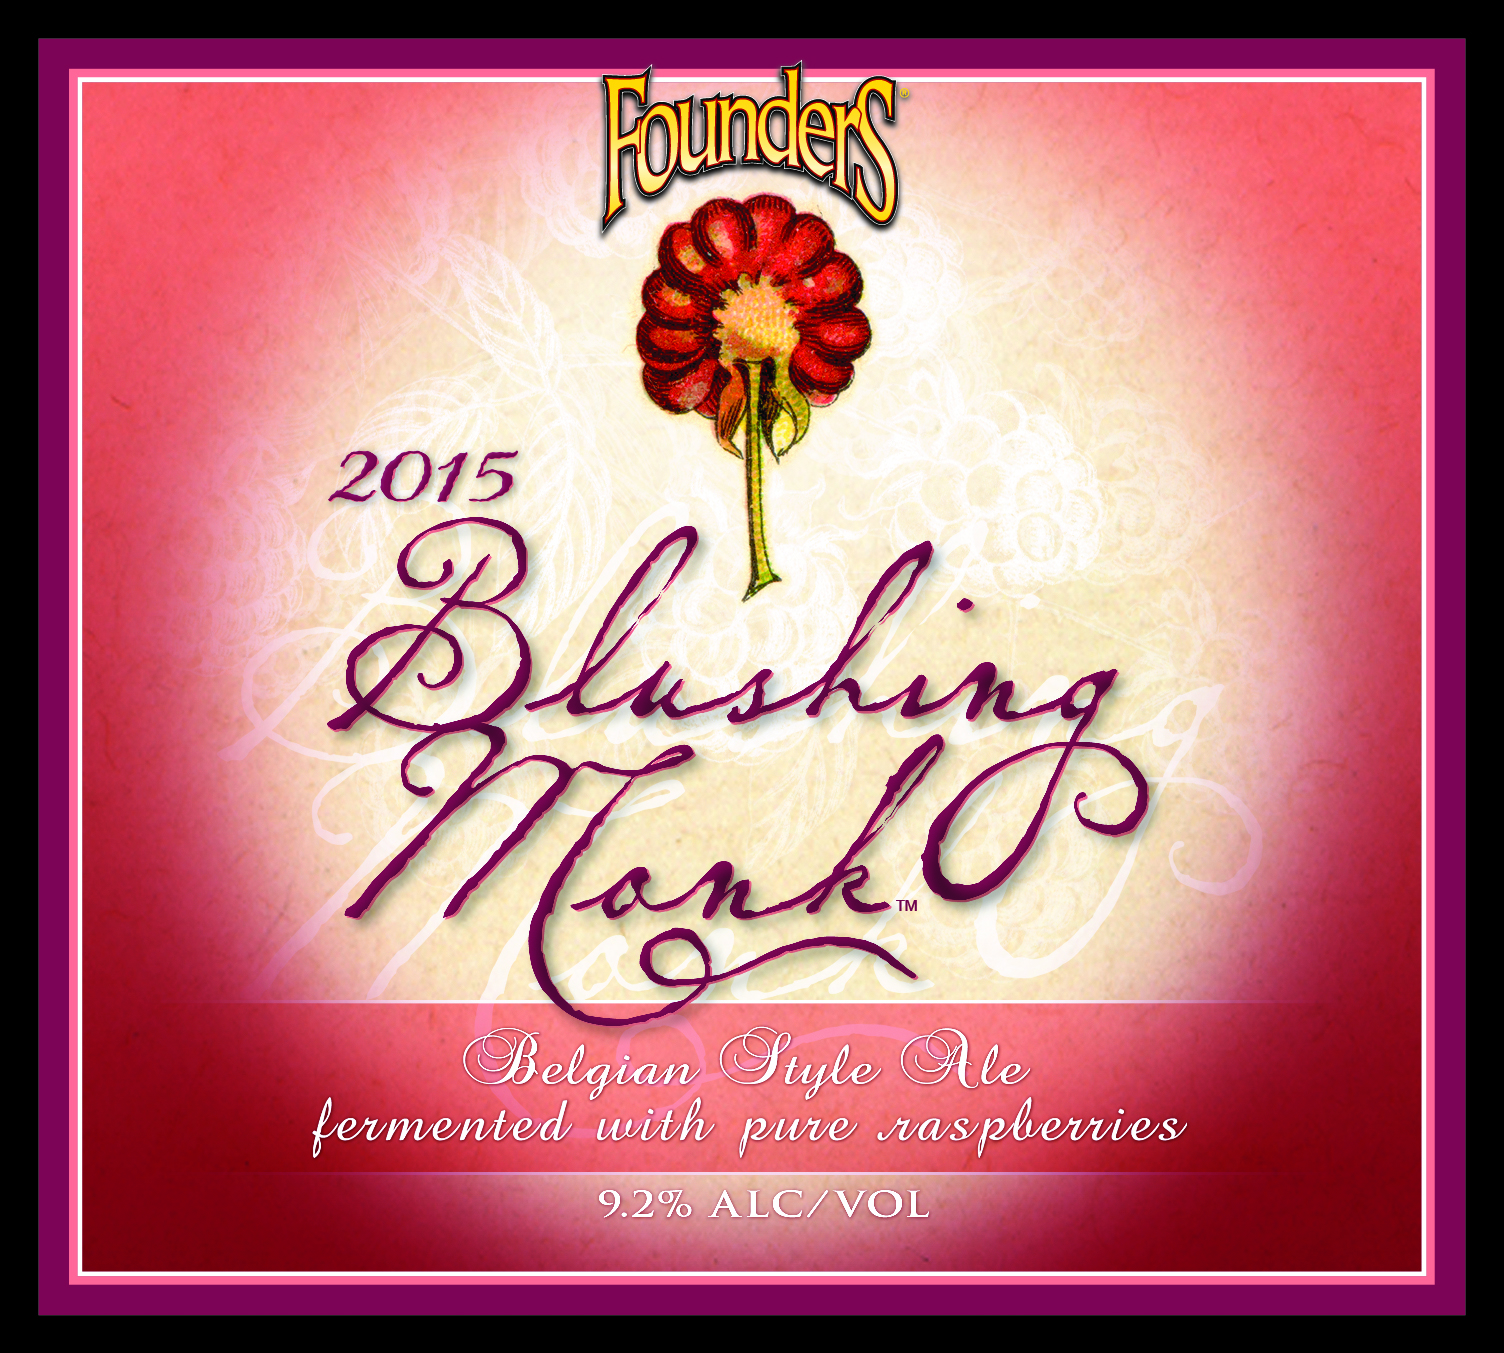 Founders Blushing Monk Returns In 2015